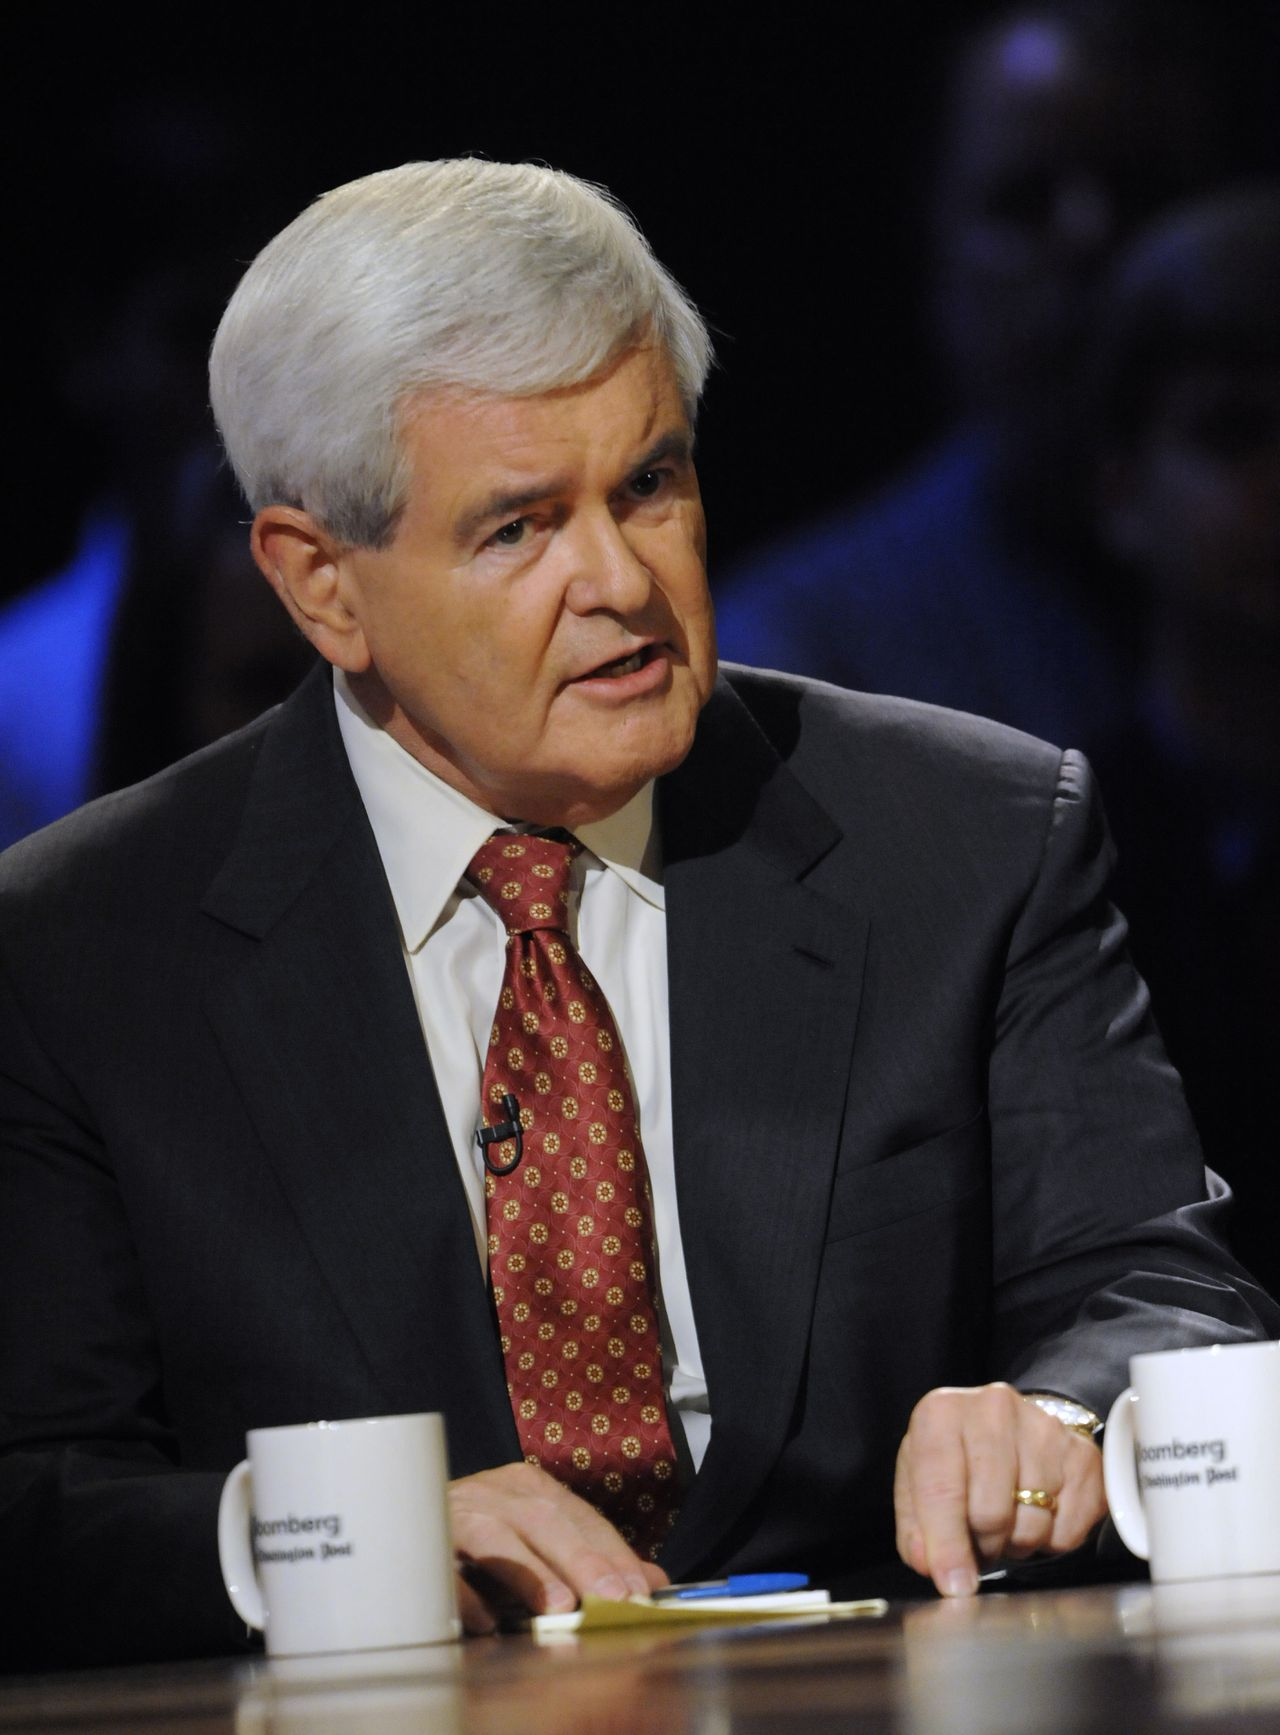 """FILE - In this Oct. 11, 2011, file photo Republican presidential candidate, former House Speaker Newt Gingrich, participates in a presidential debate at Dartmouth College in Hanover, N.H. The Georgia Republican said Sunday, Oct. 16, 2011, in Washington that he thinks President Barack Obama should have done more to reach out to ordinary Iranians when they protested against the regime. """"Our goal should be the replacement of the Iranian dictatorship."""" he said. (AP Photo/Melina Mara, Pool)"""